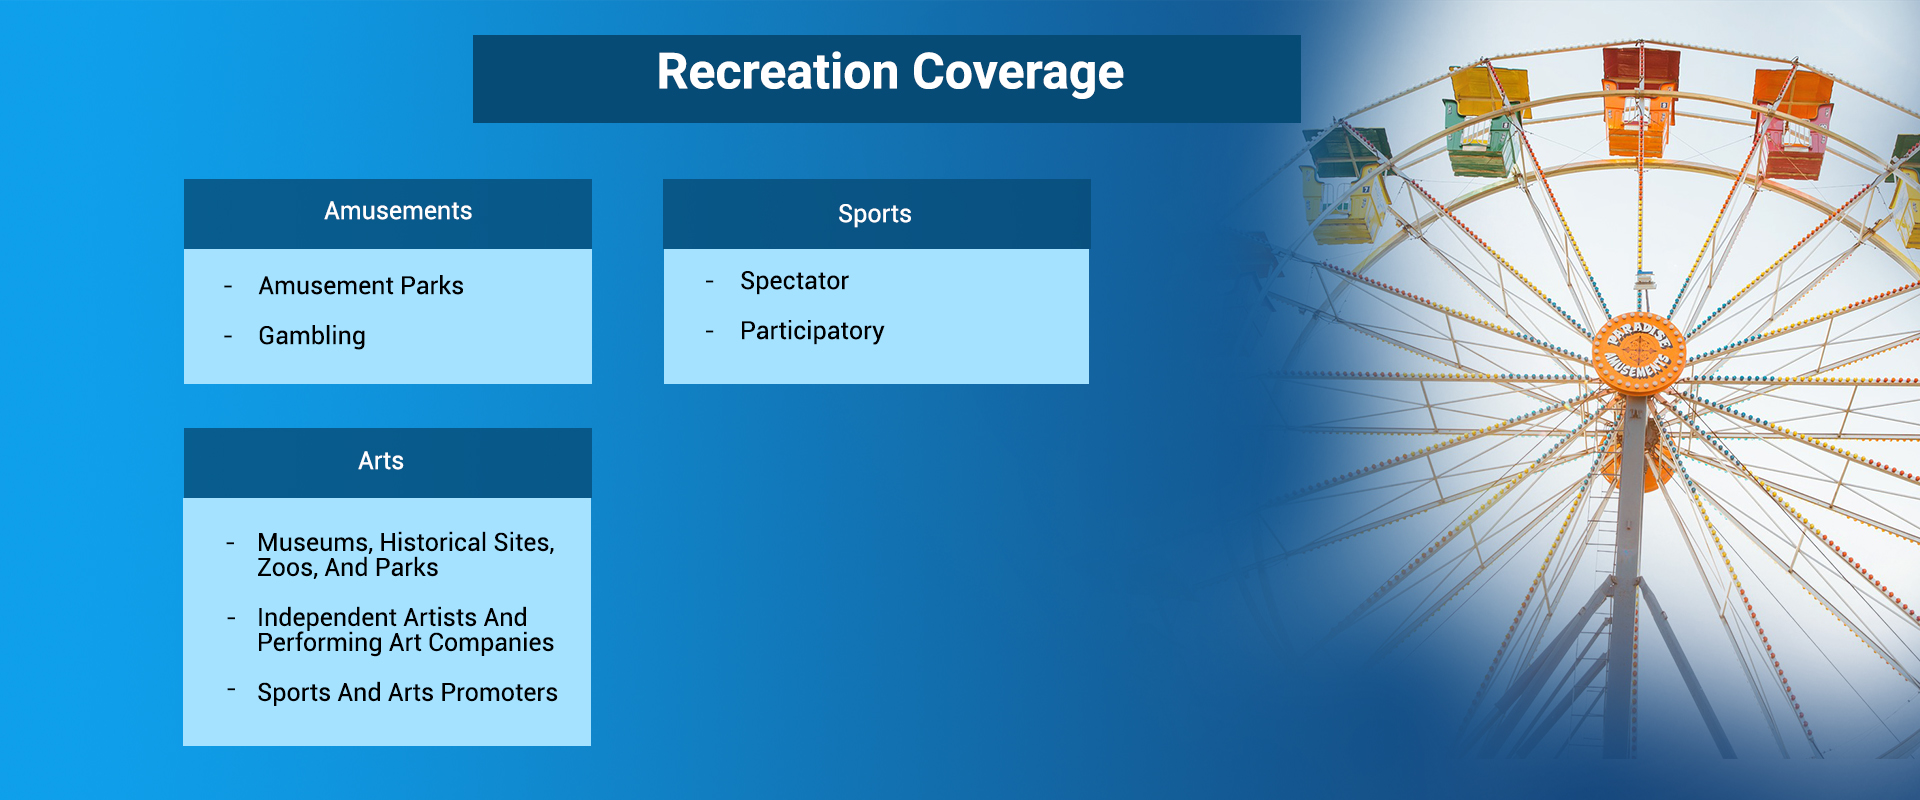 Recreation Coverage